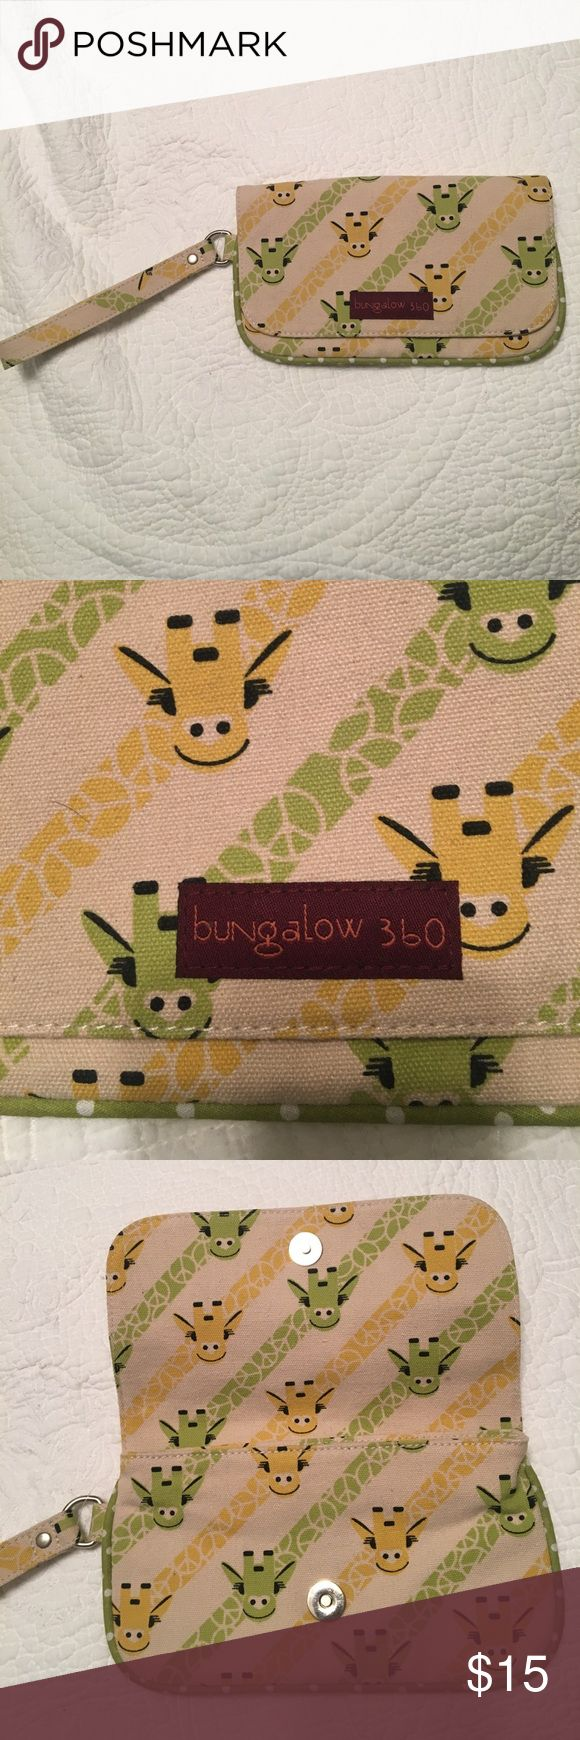 Bungalow 360 Giraffe wristlet Bungalow 360 Giraffe wristlet. Never warn. Bungalow 360 Bags Clutches & Wristlets